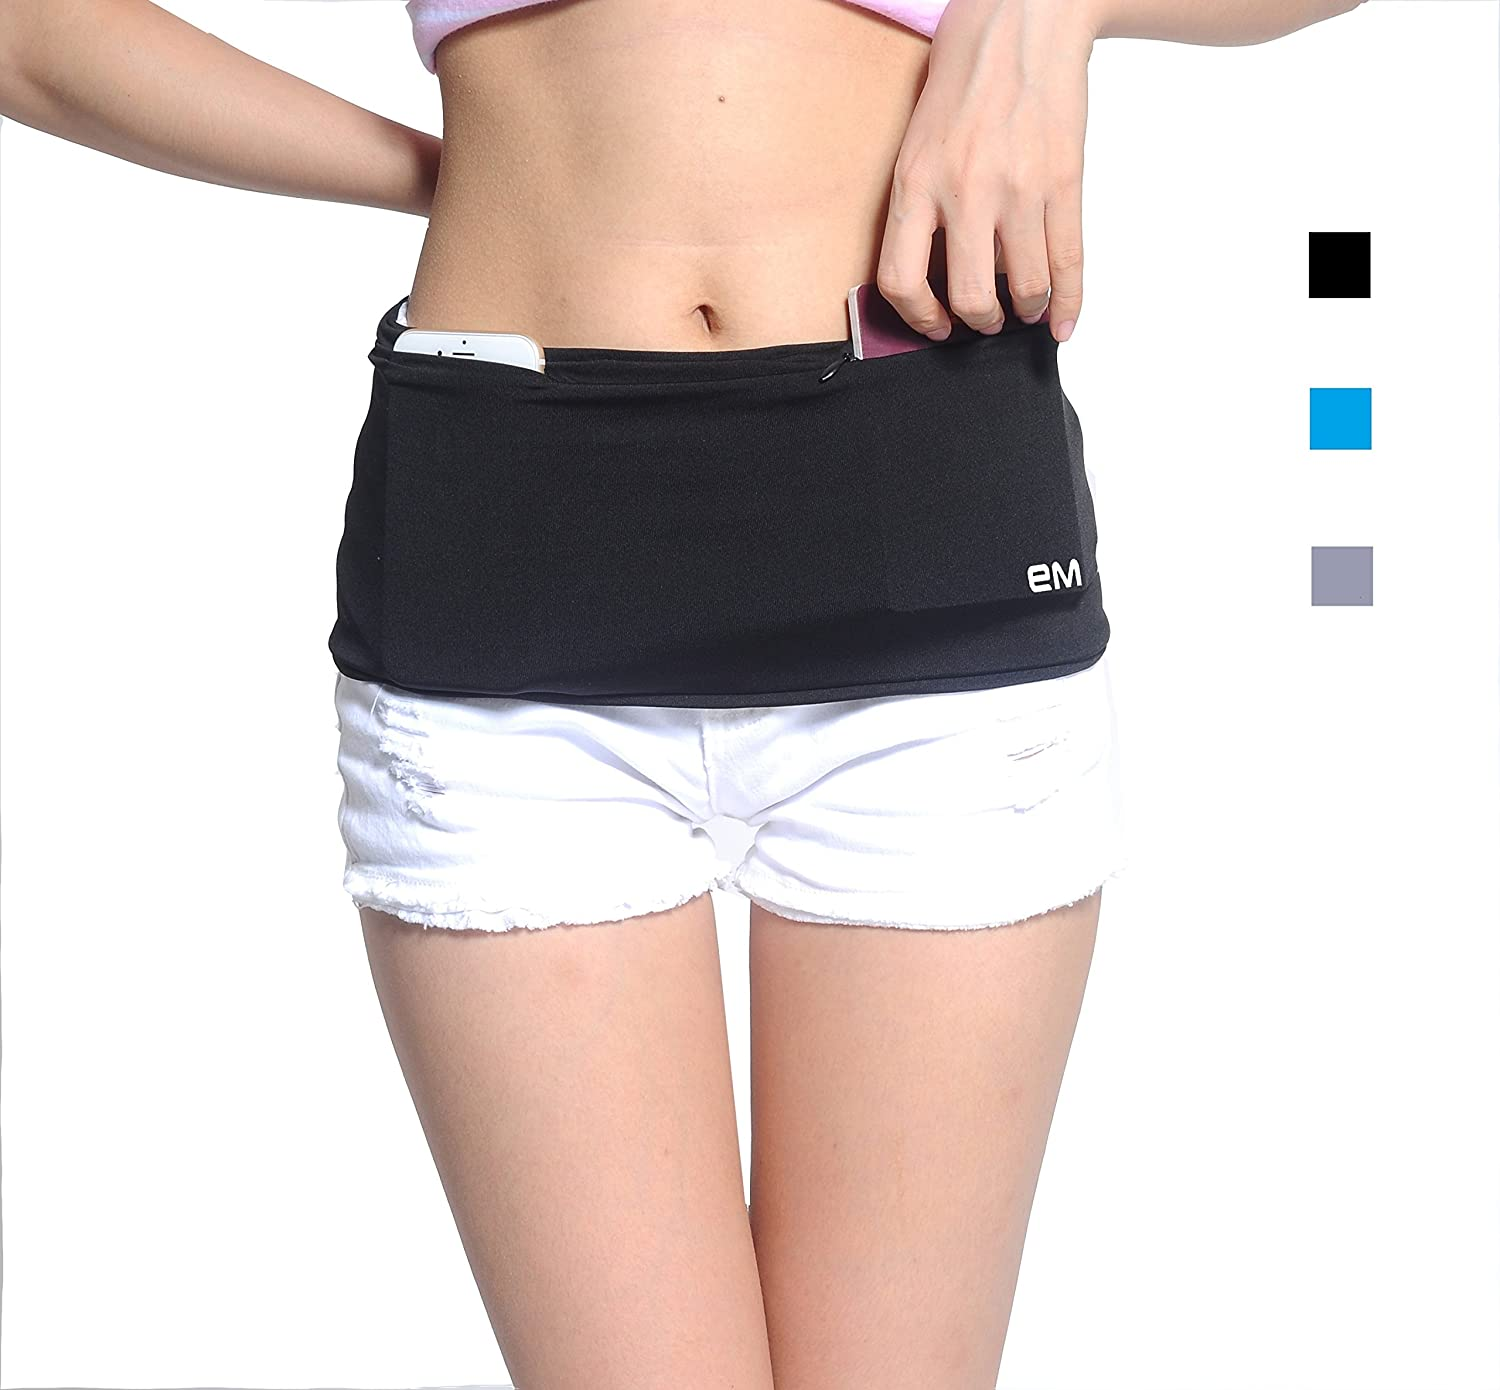 EAZYMATE Fashion Running Belt.